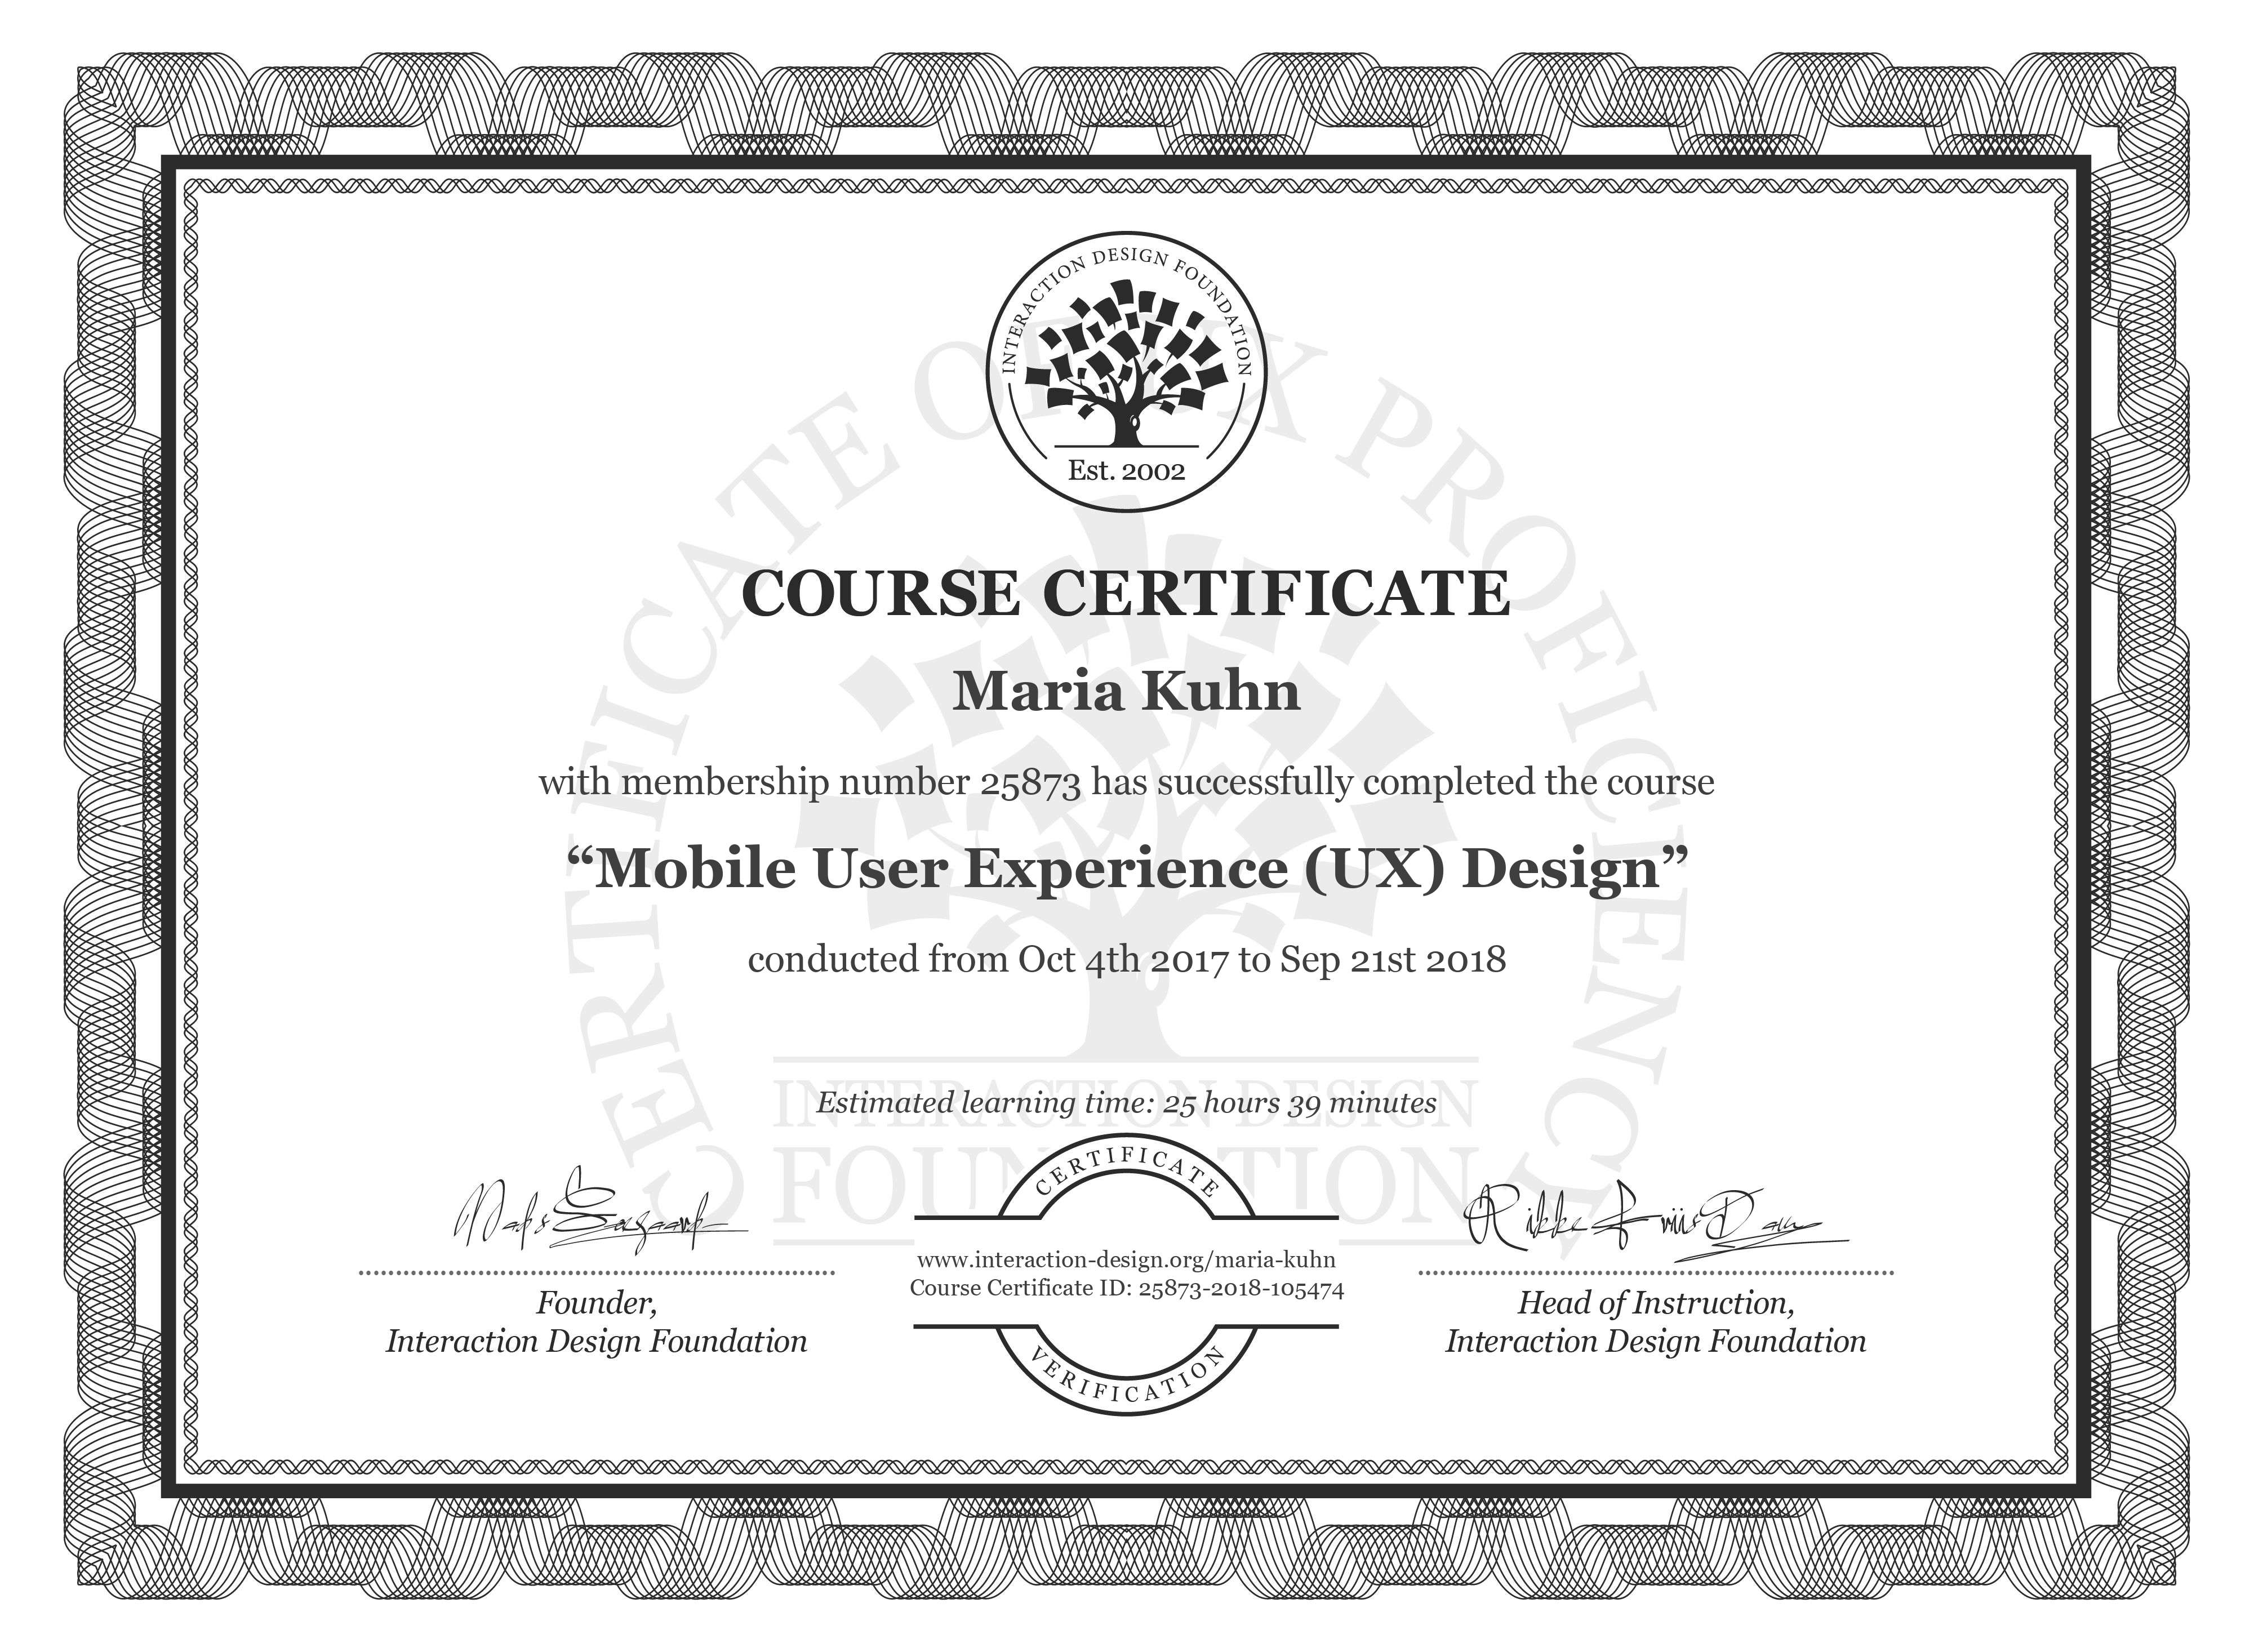 Maria Kuhn: Course Certificate - Mobile User Experience (UX) Design